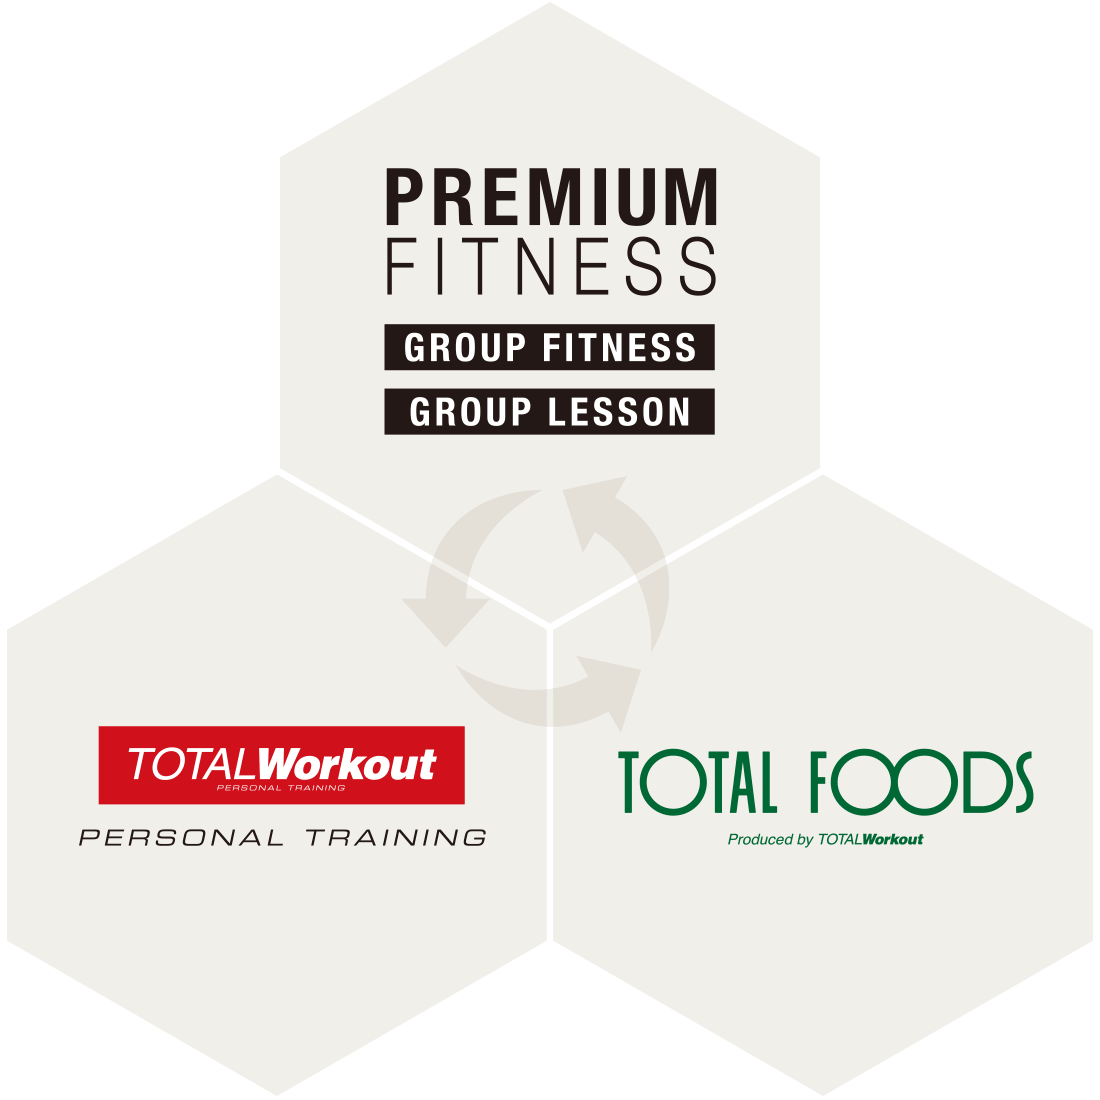 Synergy of PREMIUM FITNESS